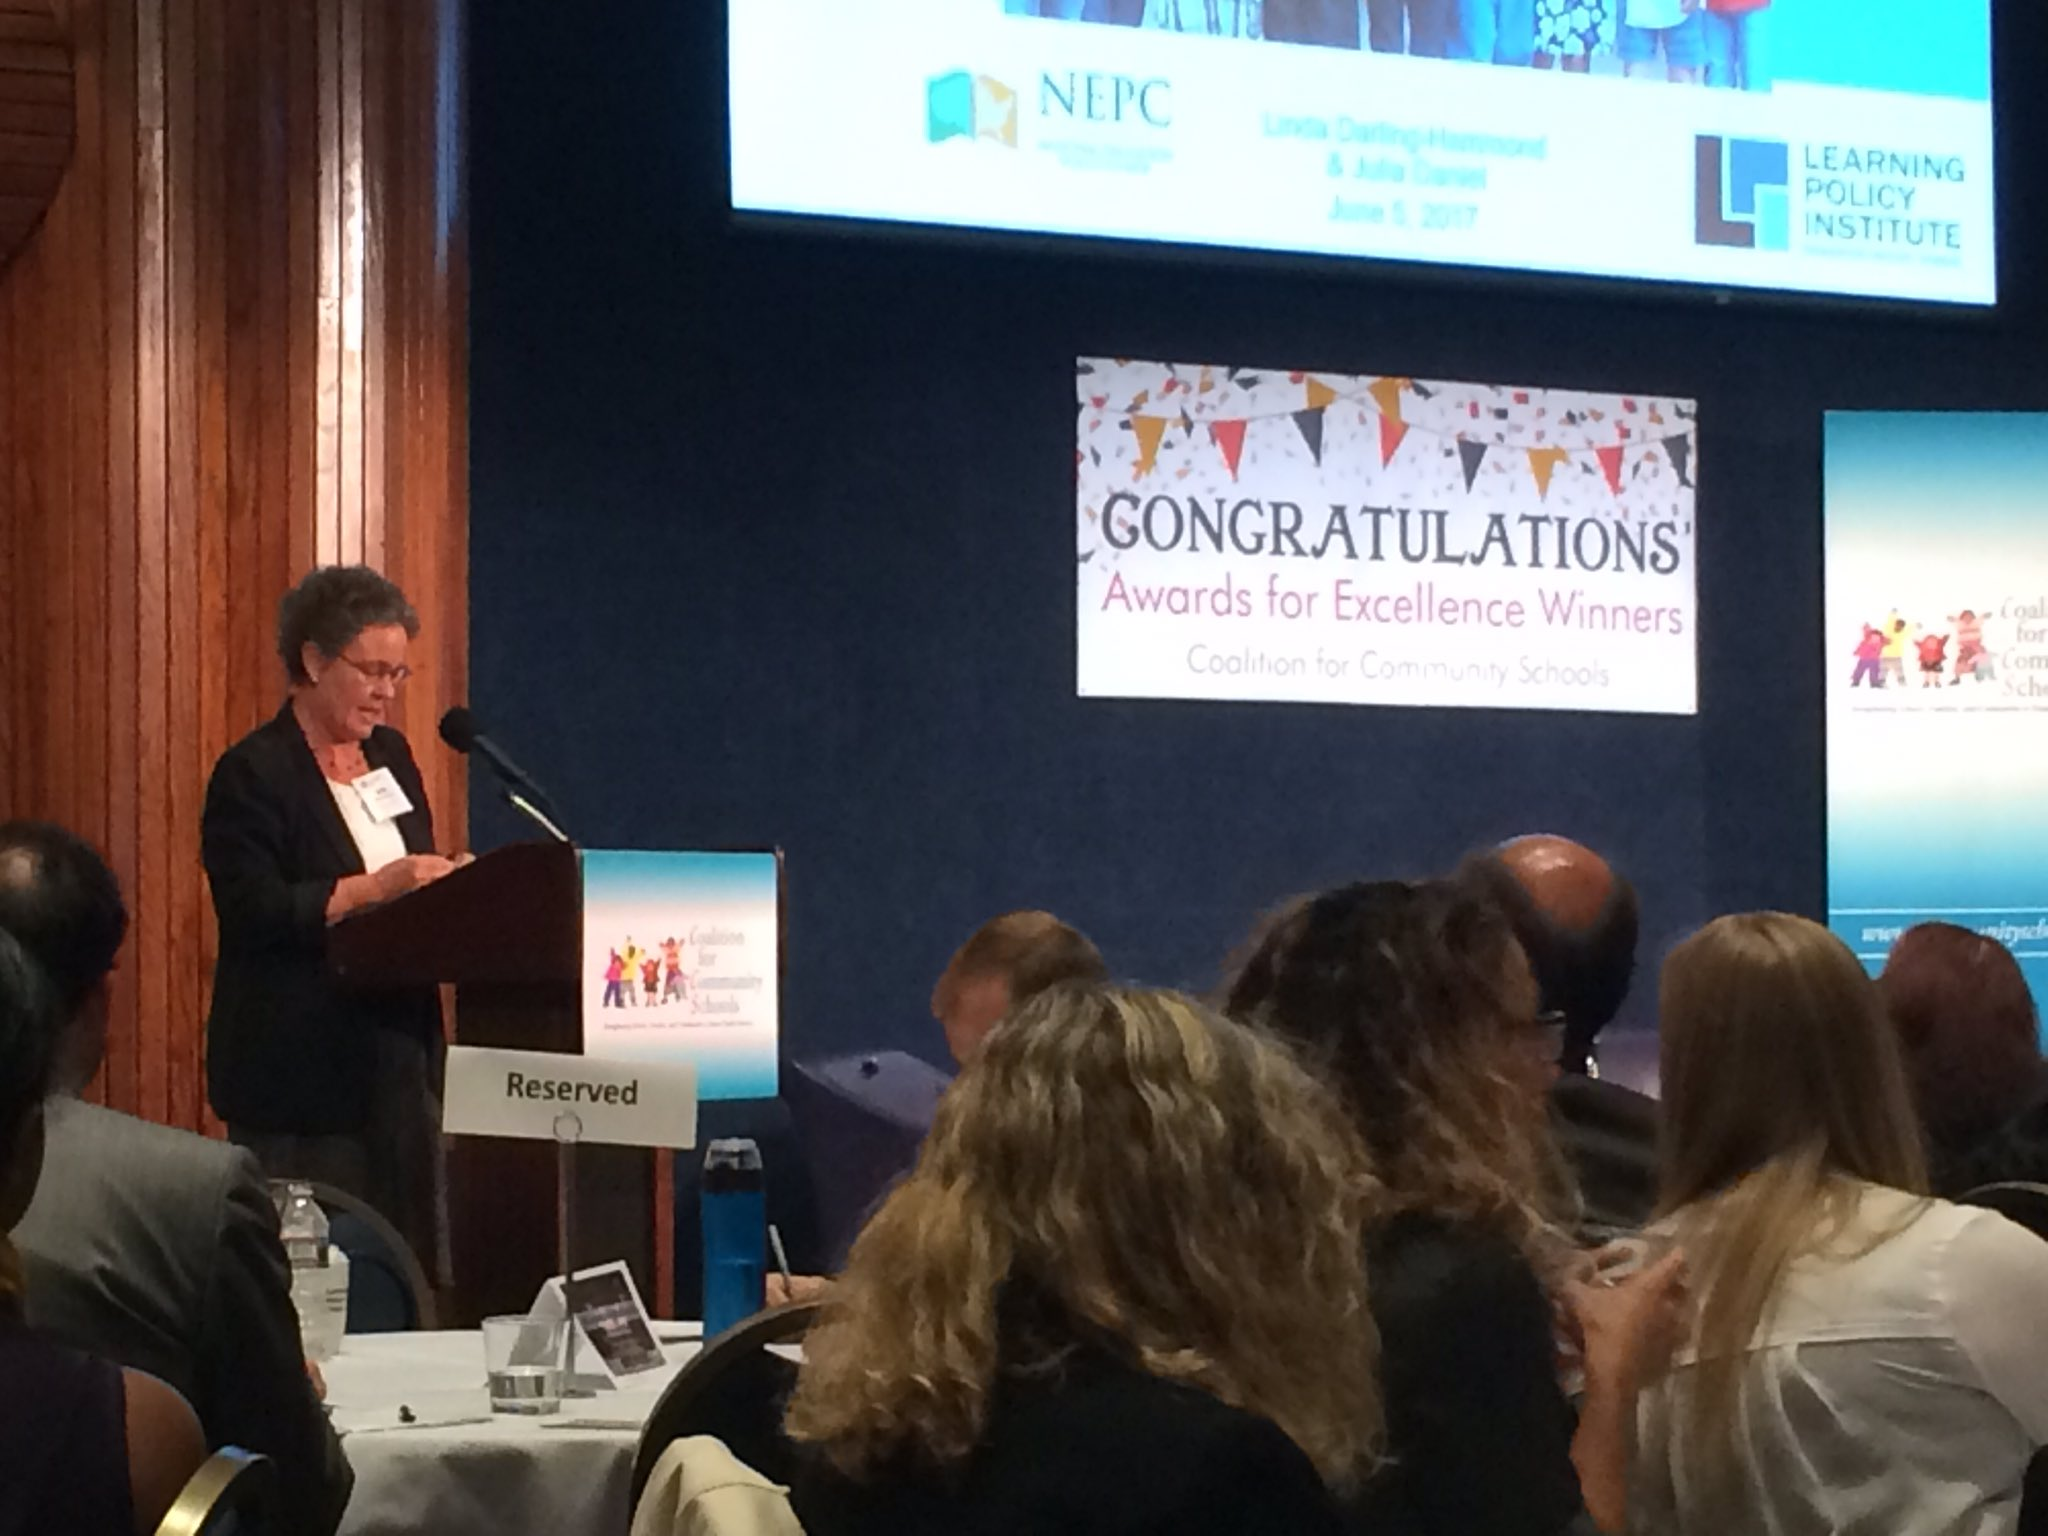 Dr. Linda Darling-Hammond, Learning Policy Institute, addresses the crowd at the #CommunitySchools Awards for Excellence Symposium. https://t.co/F6aJDmhv25